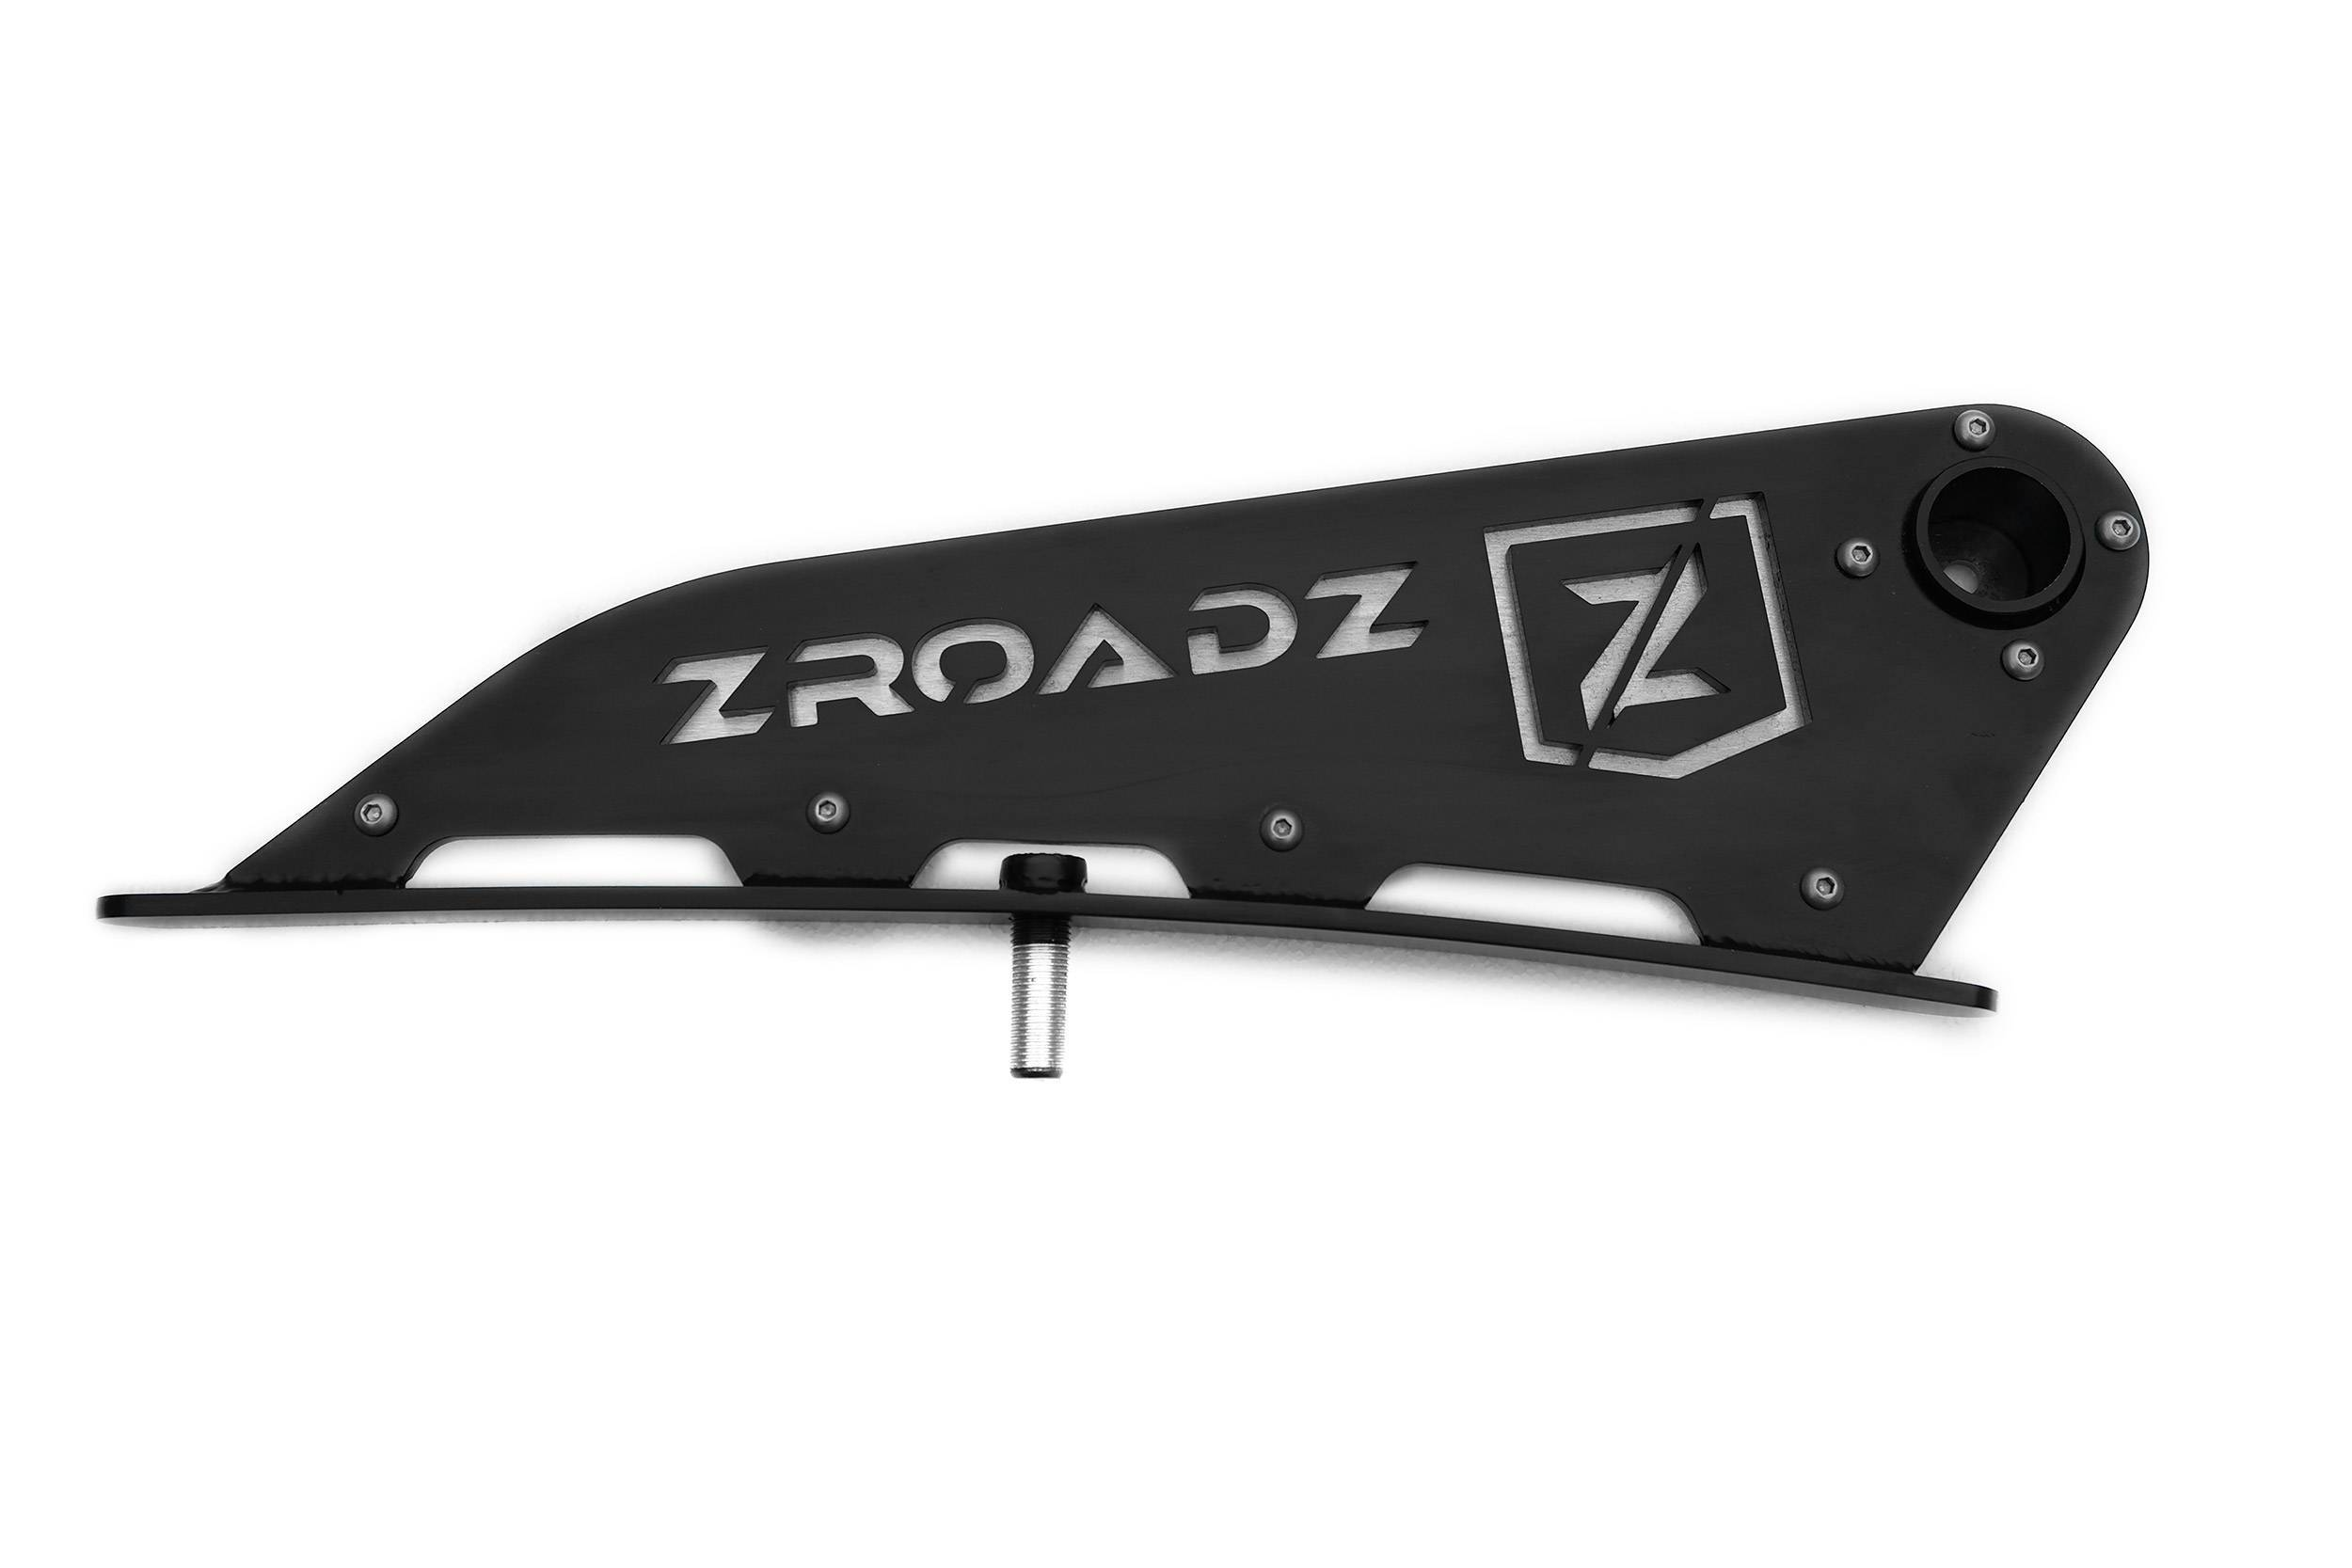 Silverado, Sierra 1500 Front Roof LED Bracket to mount 50 Inch Staight LED Light Bar - PN #Z332181